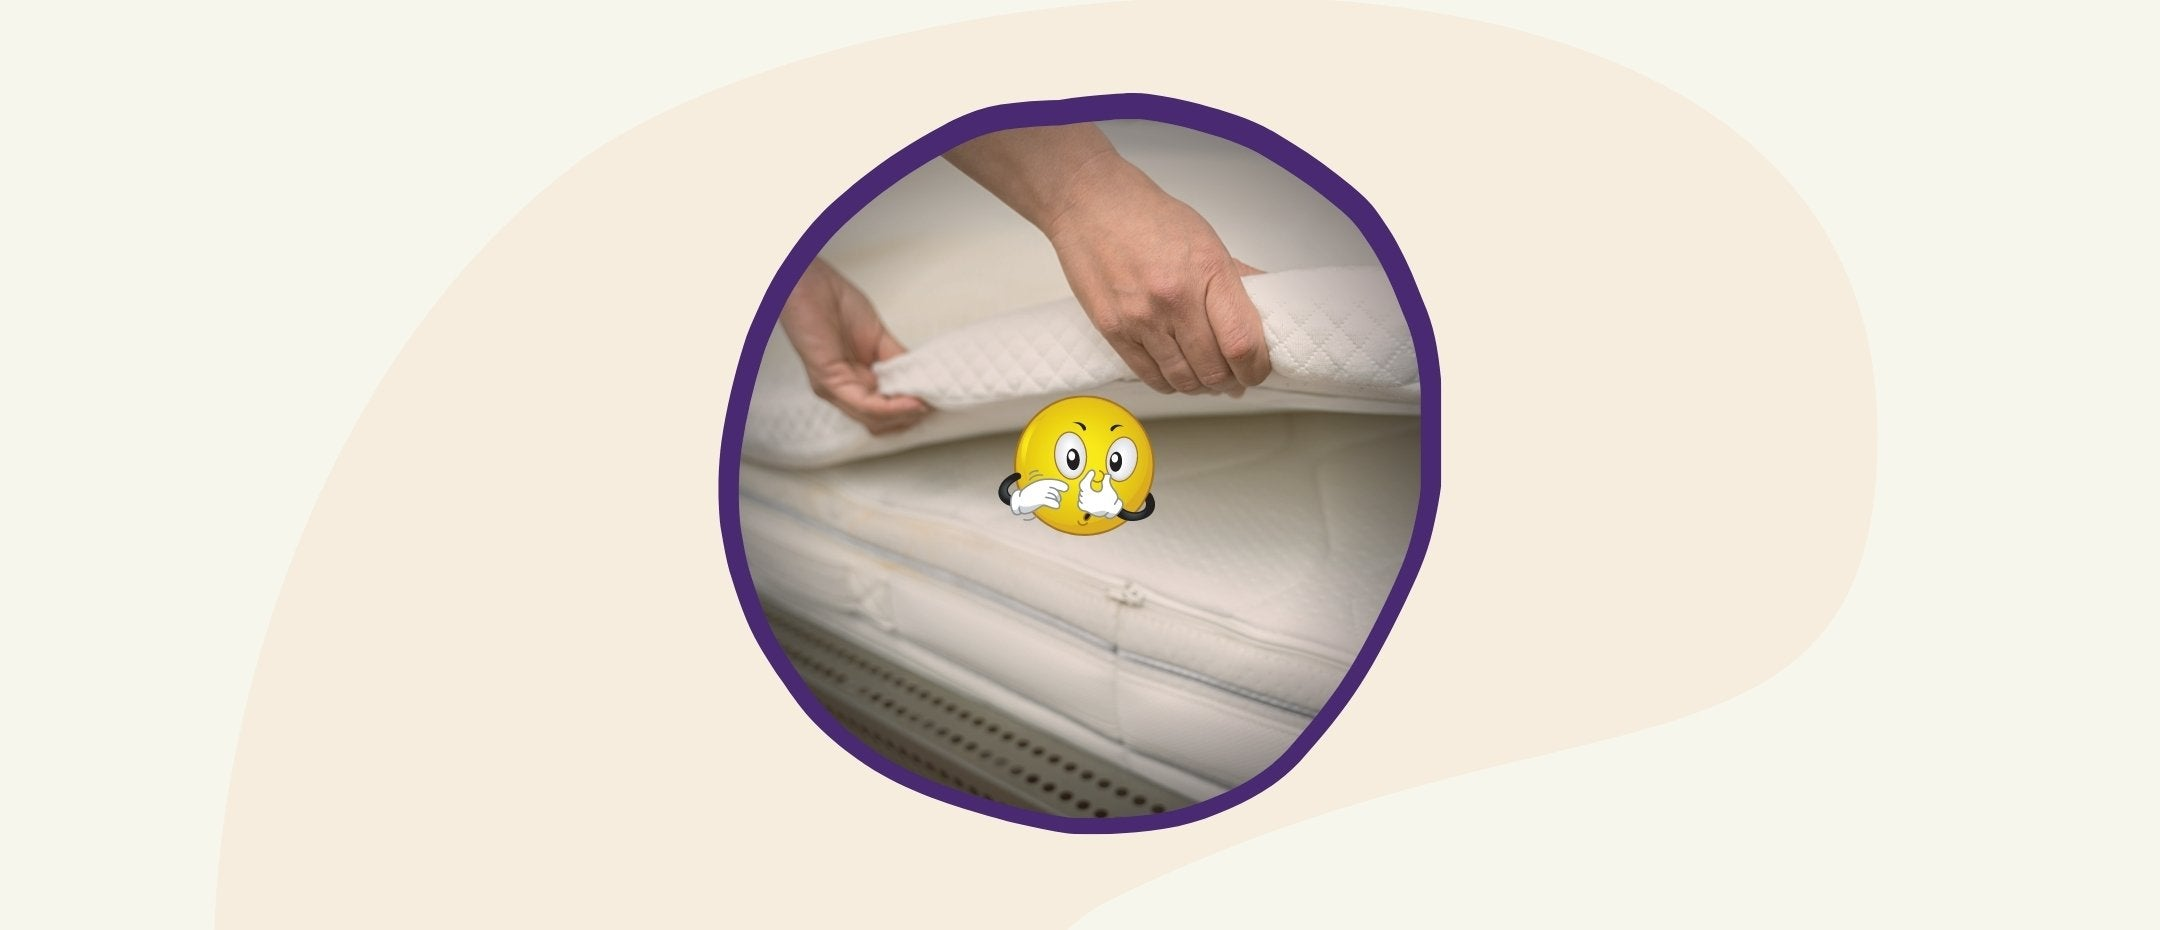 Mr. Emoji hates the smell of that mattress topper